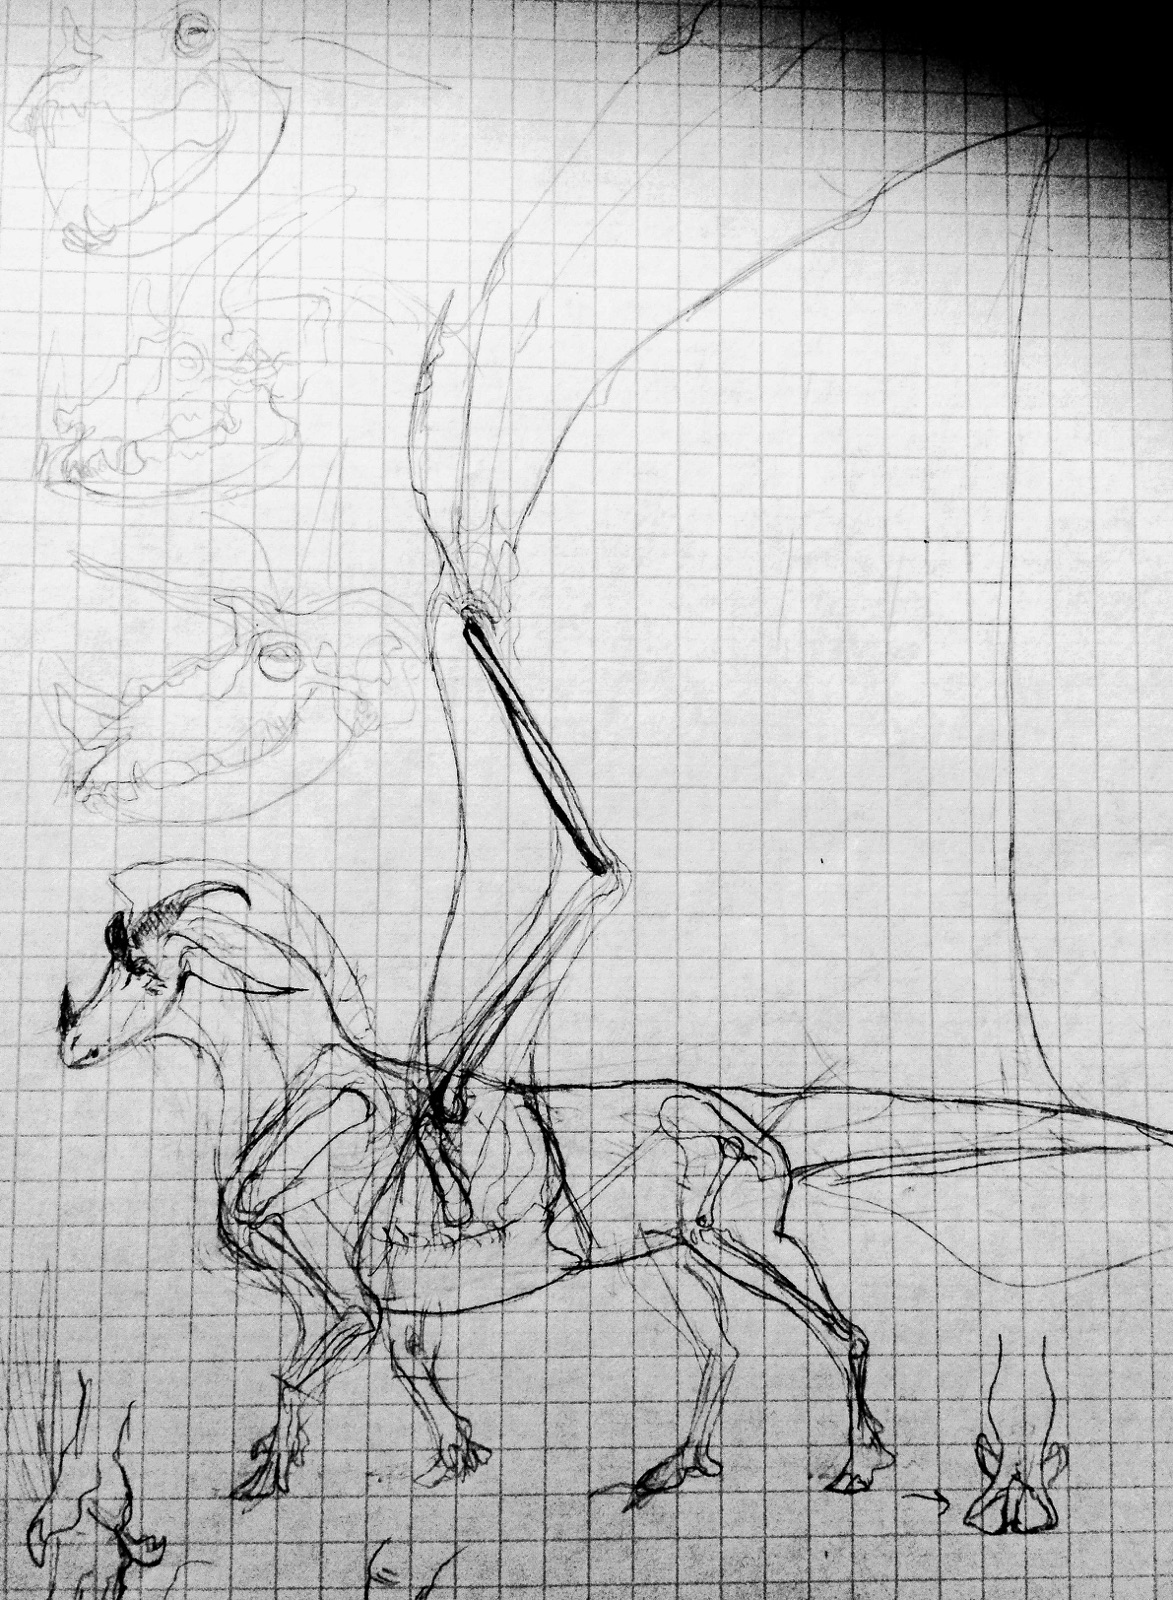 Dragon sketches by Quadrupedal